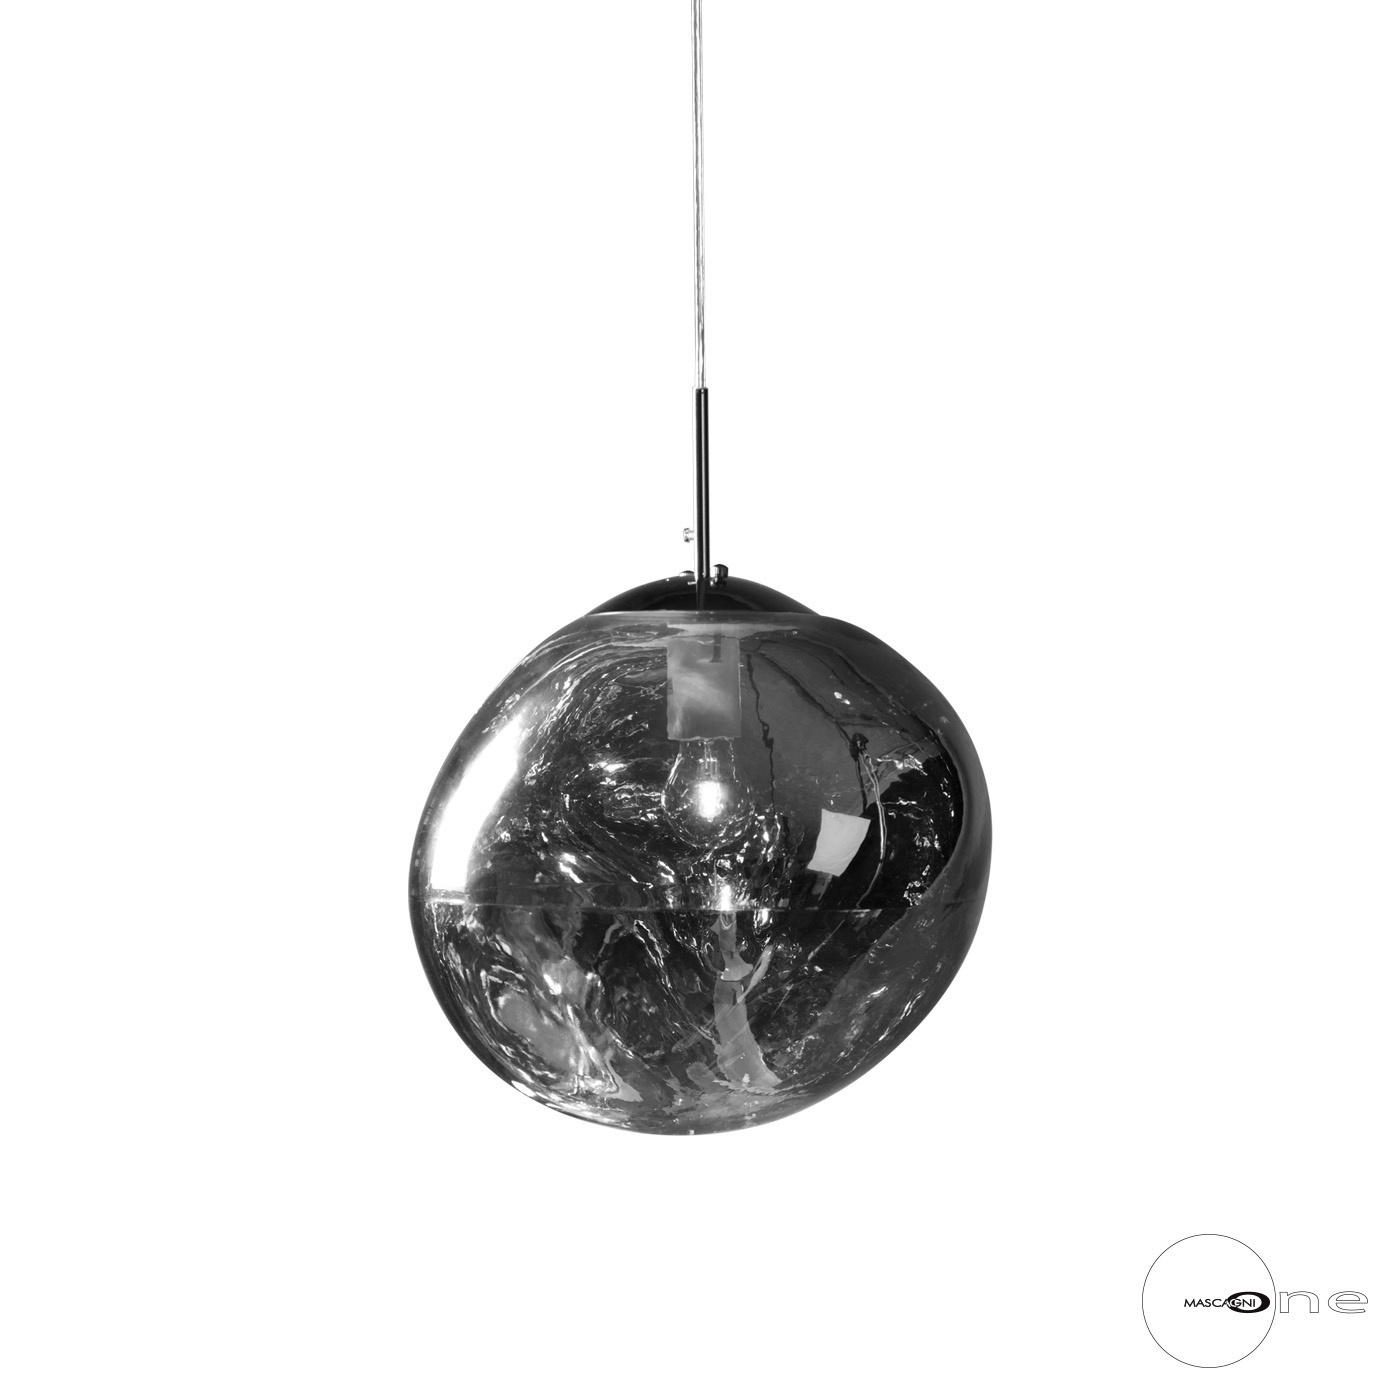 Art Mascagni O1490 CEILING LAMP DIAM.28 - COL.CHROME